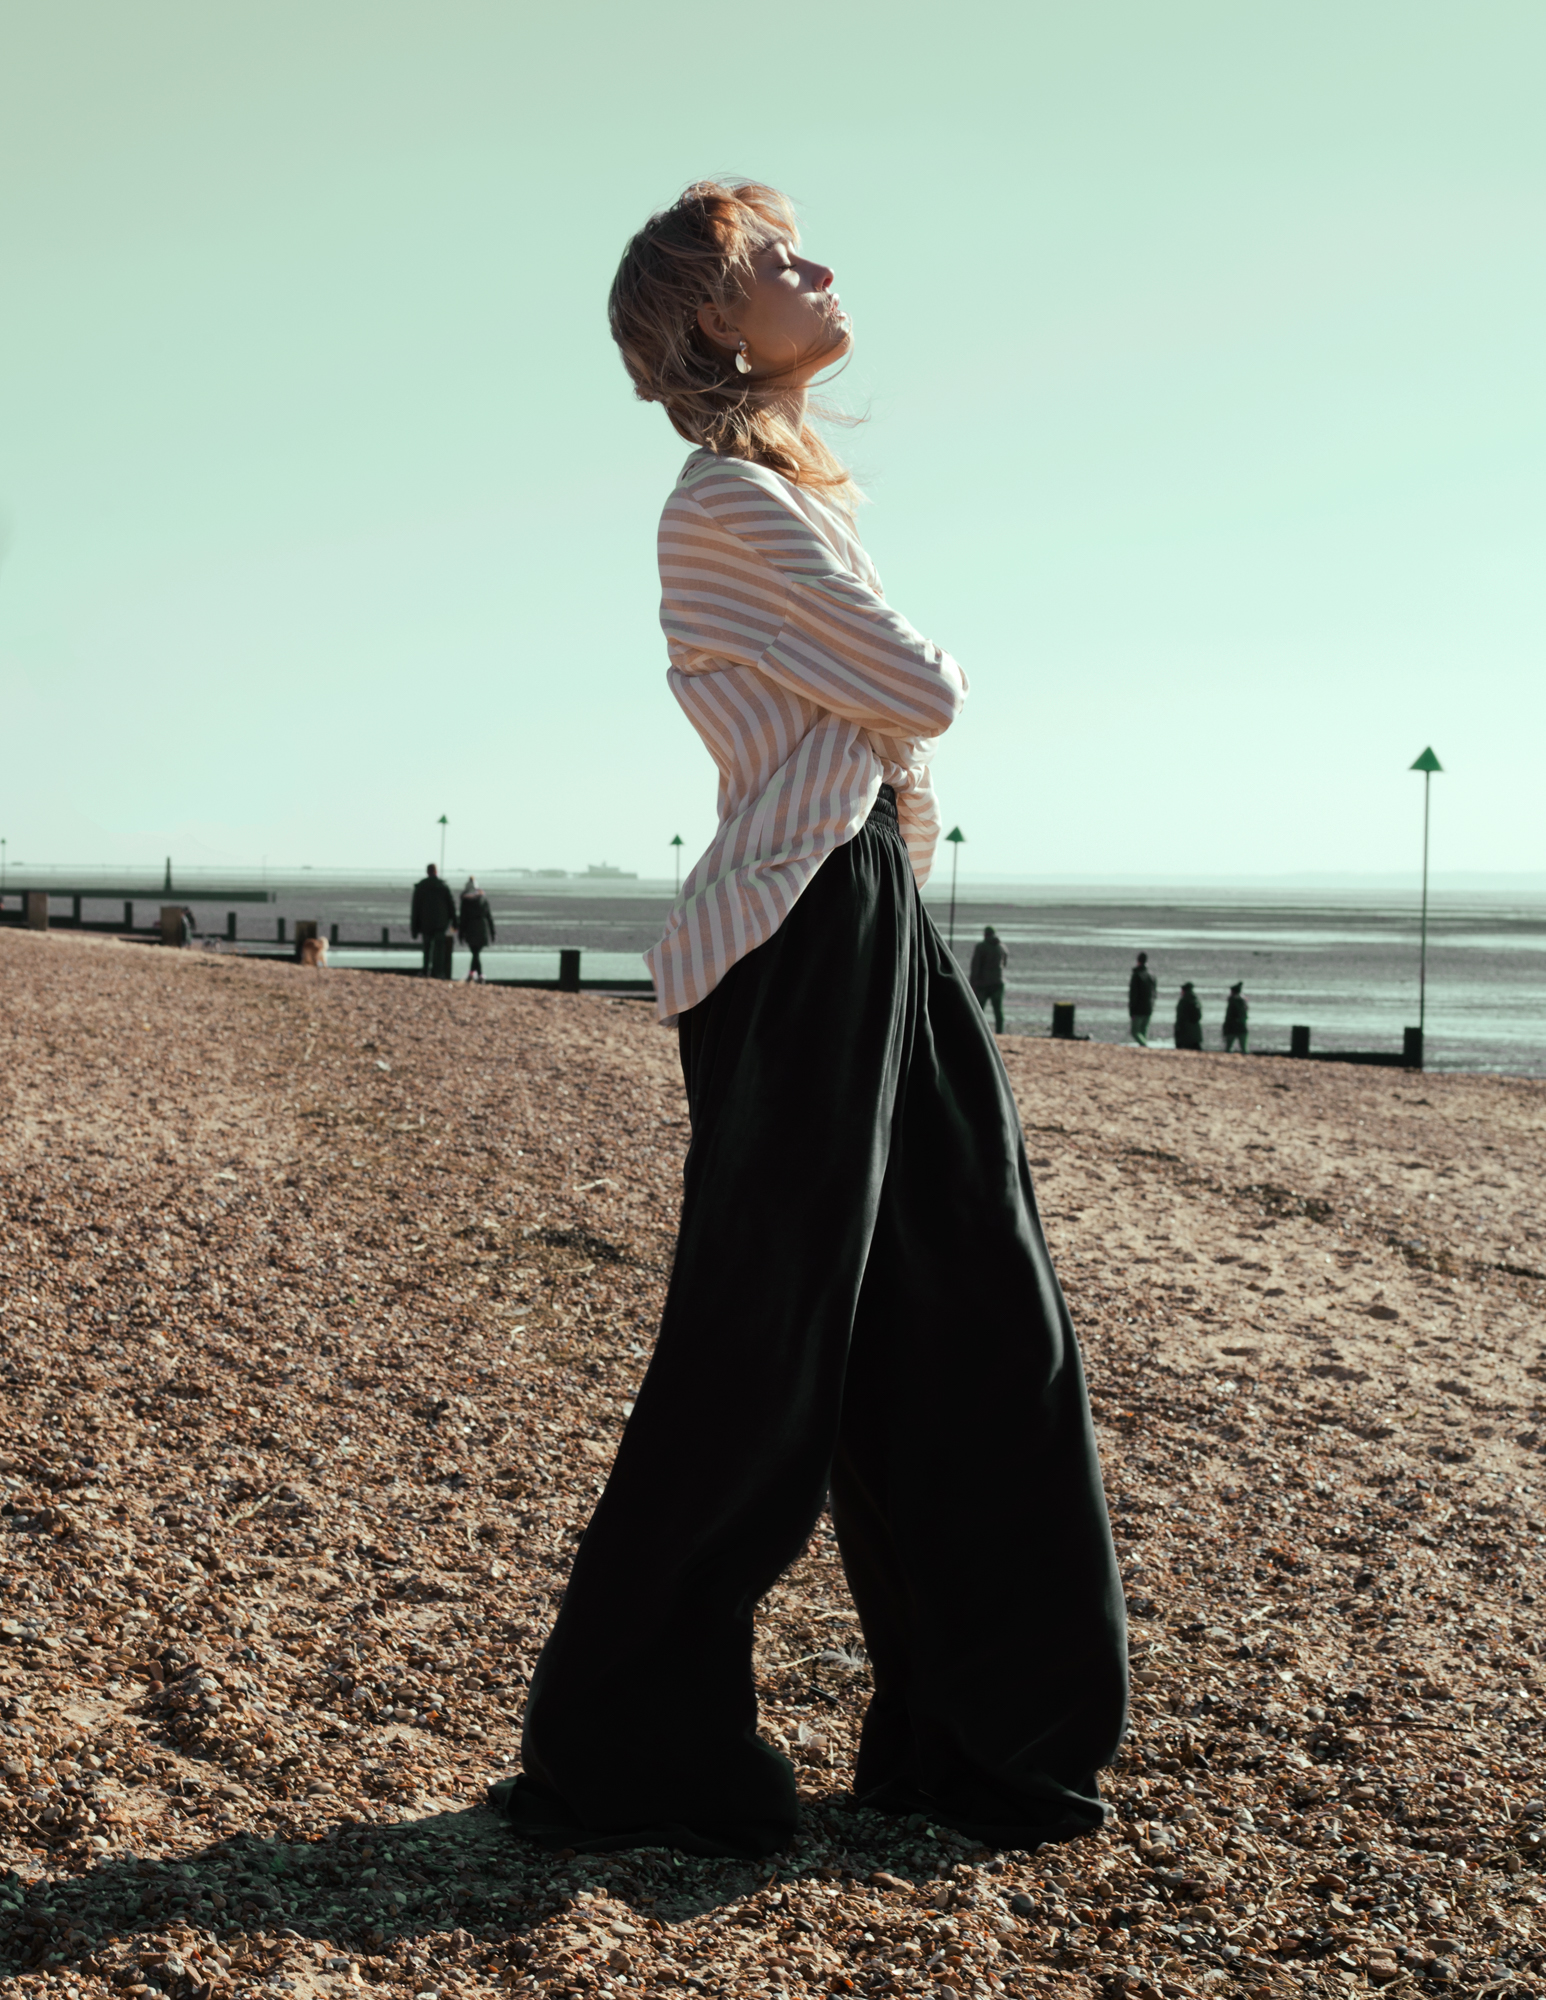 kat terek london fashion photographer polish tarnow uk model test lindenstaub new faces editorial bohemian bronze natural professional beautiful instagram blogger seaside adrift agency represented independent freelance lovebite jack mills net-a-porter pringle of scotland